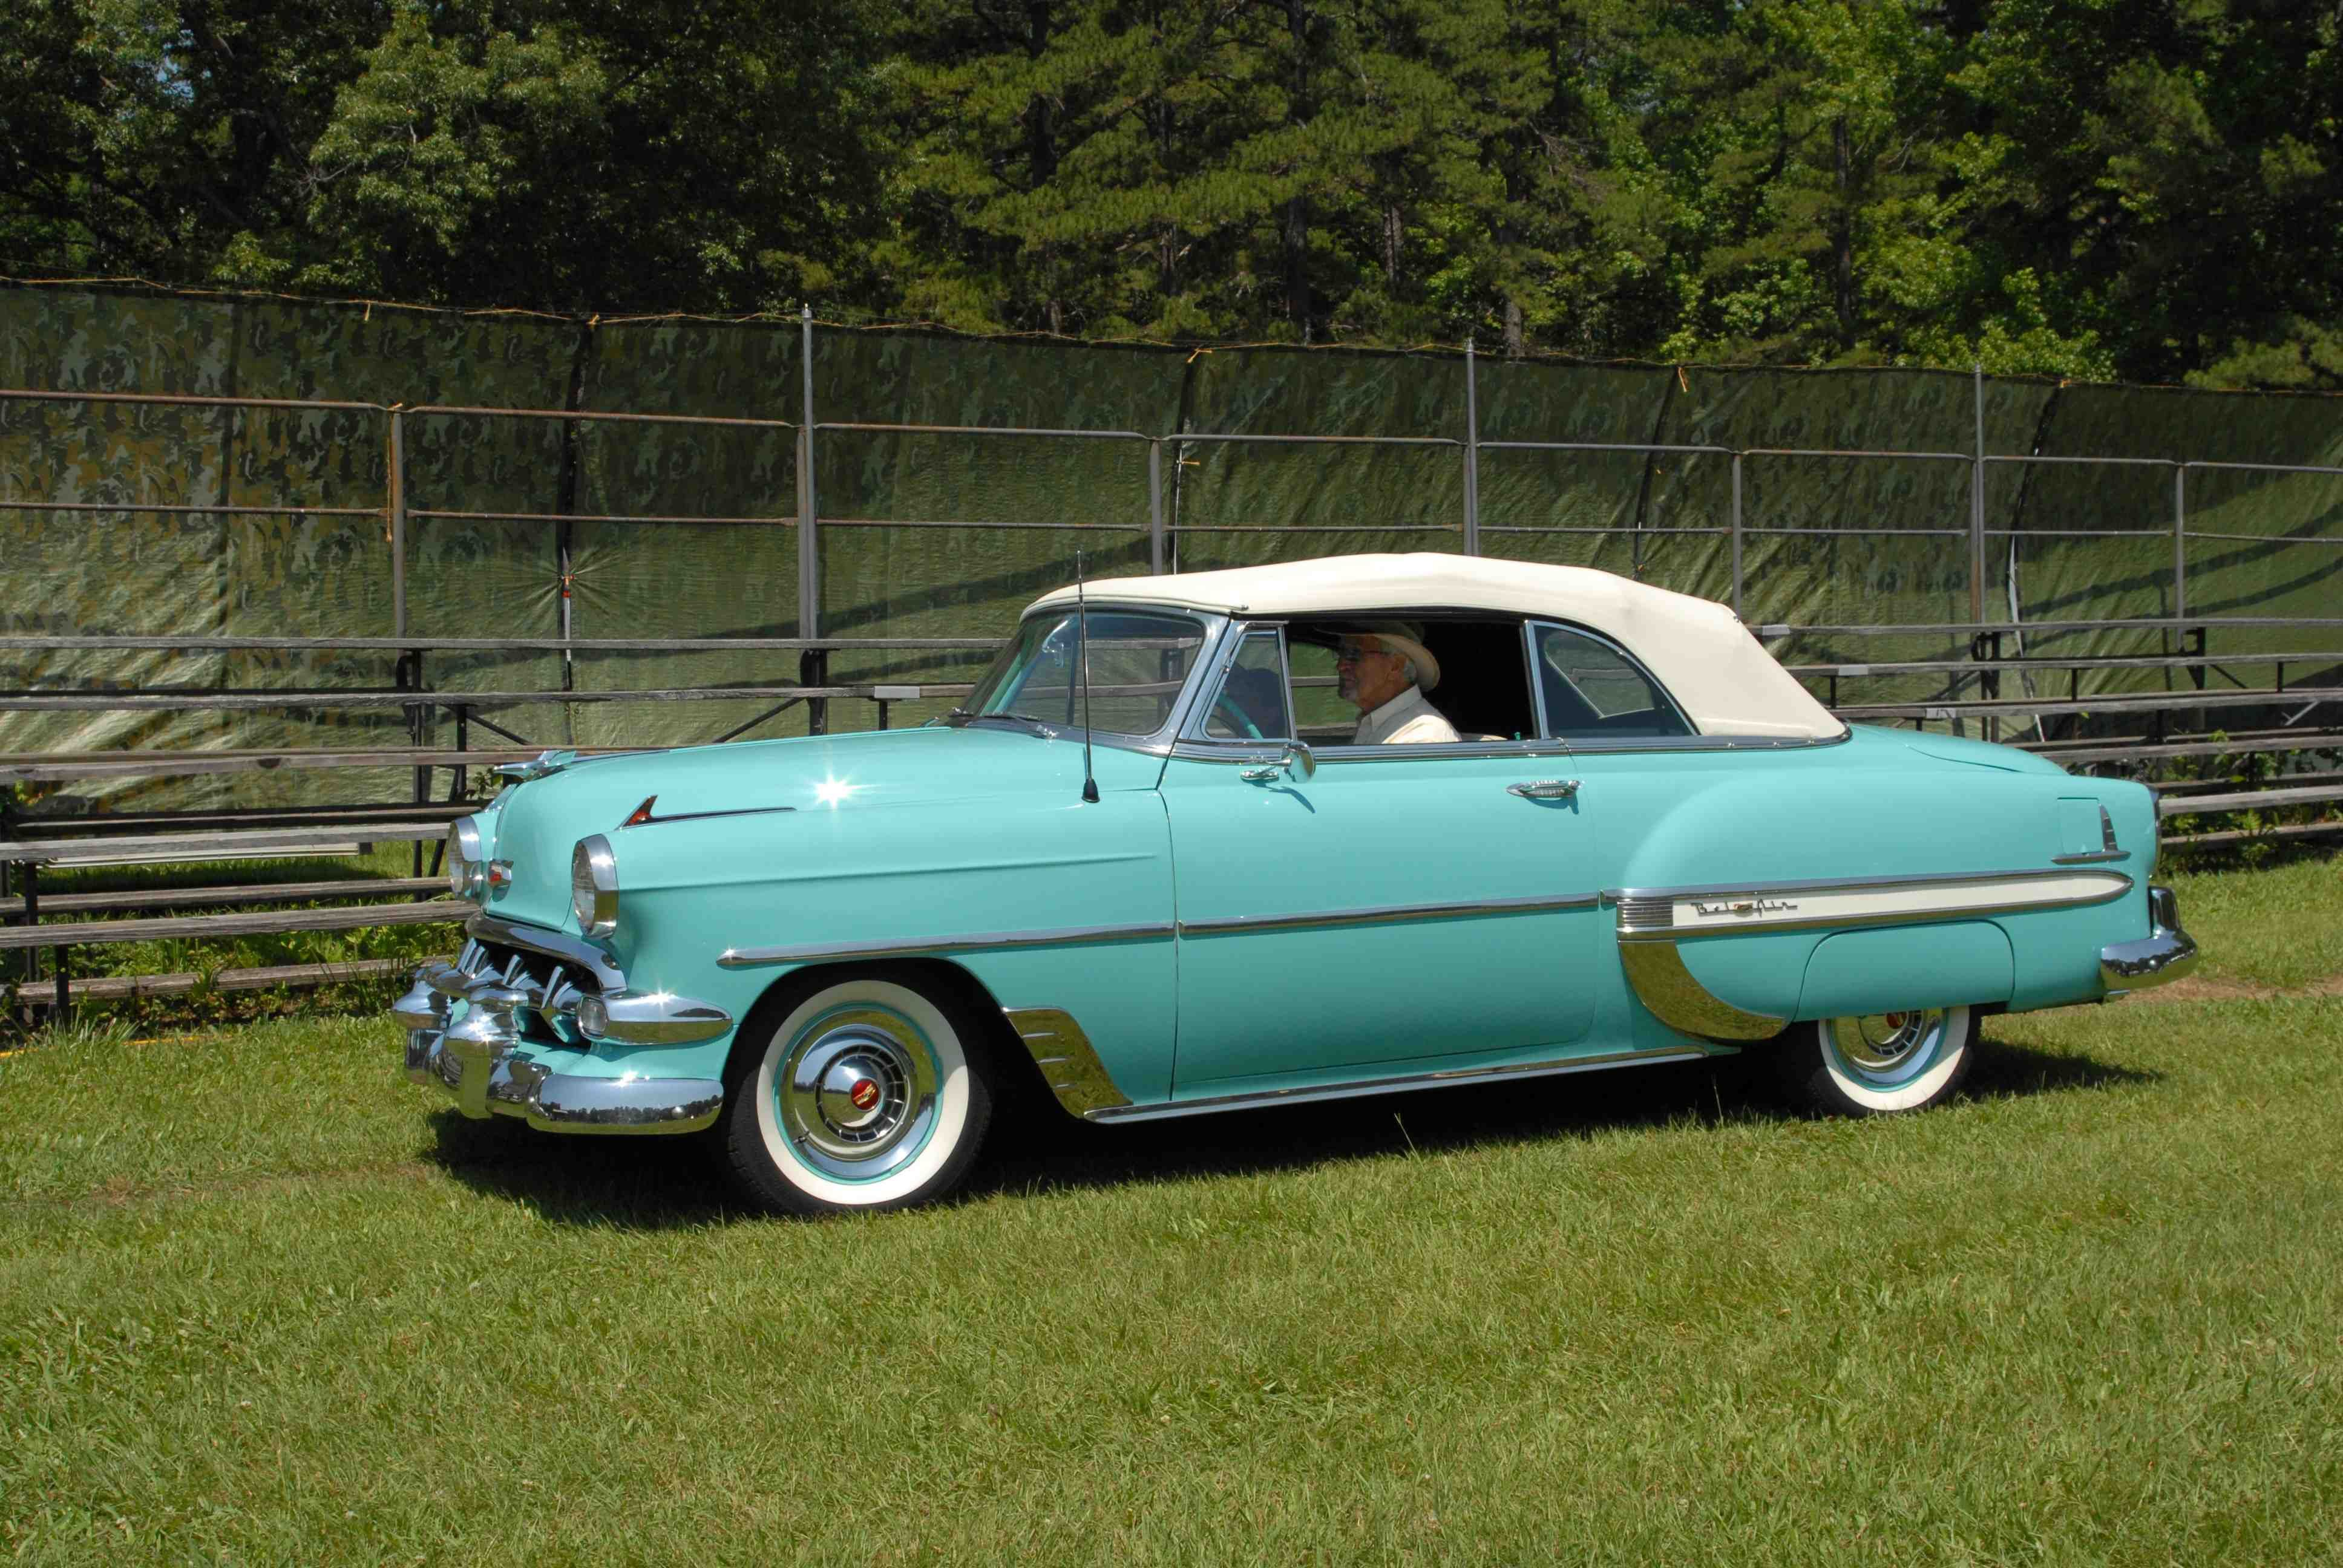 1954 Chevy Convertible | CHEVROLET | Pinterest | Convertible, Cars ...